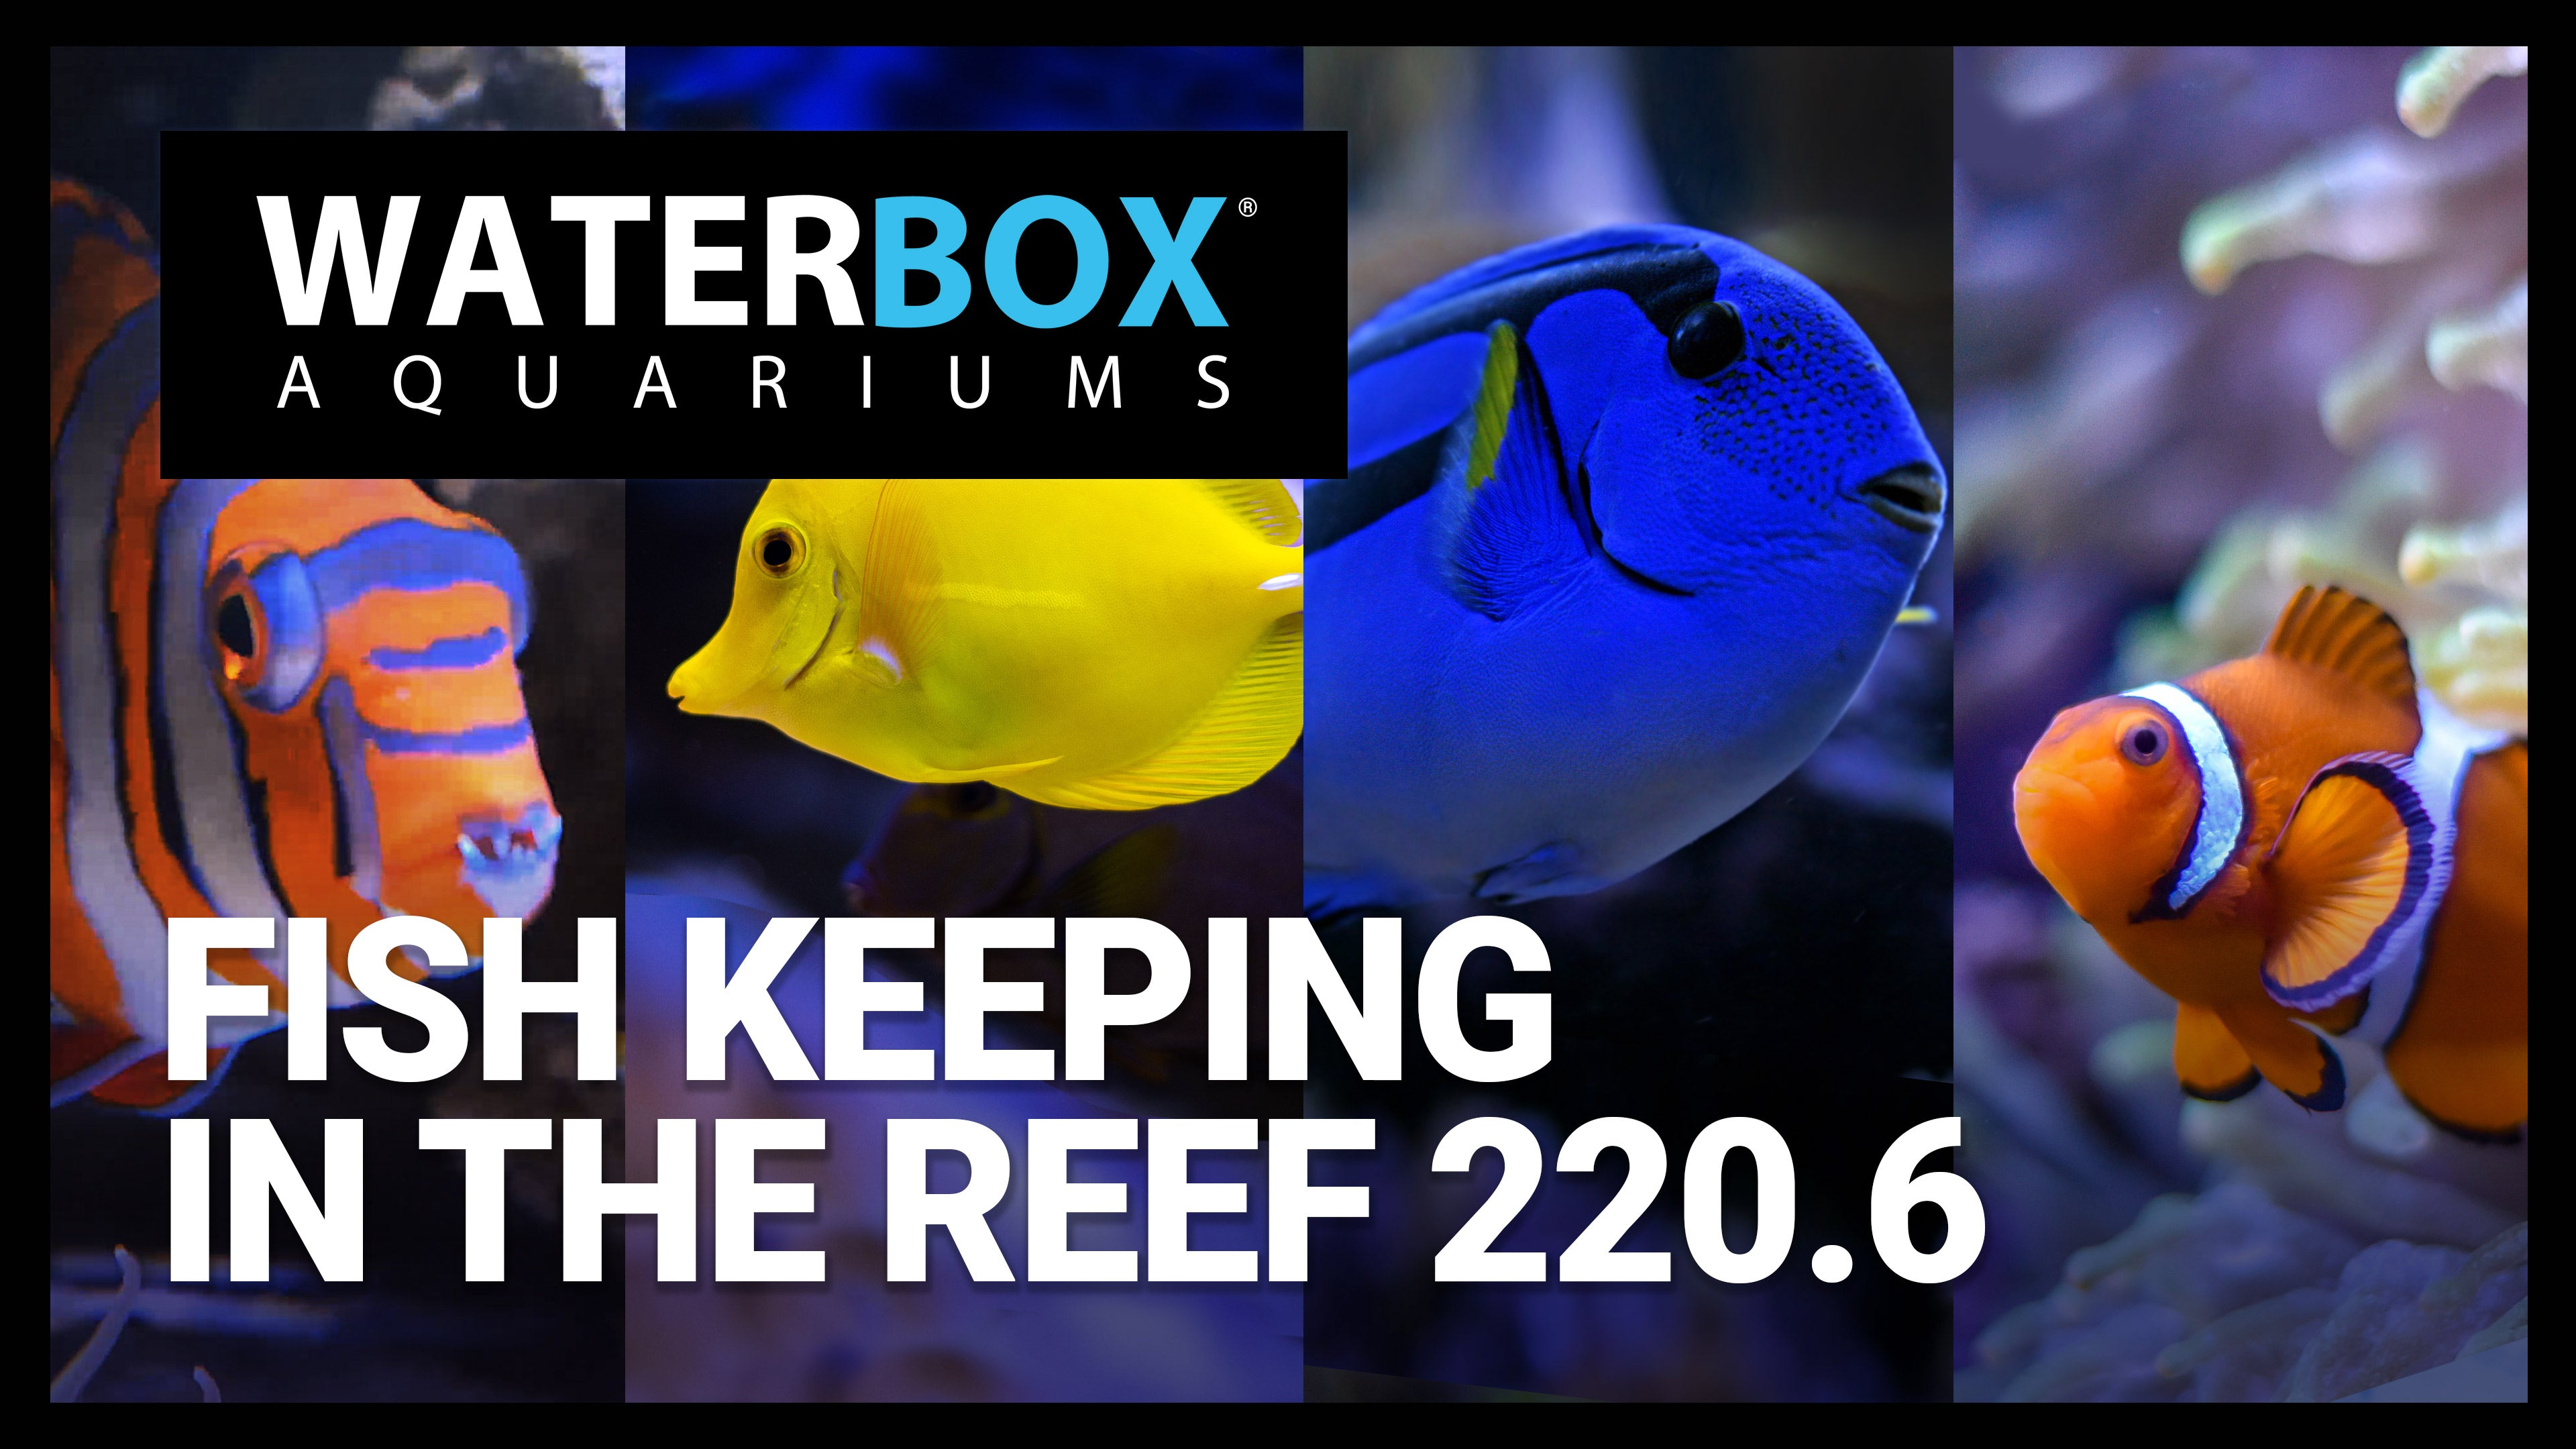 Fish Keeping in the REEF 220.6